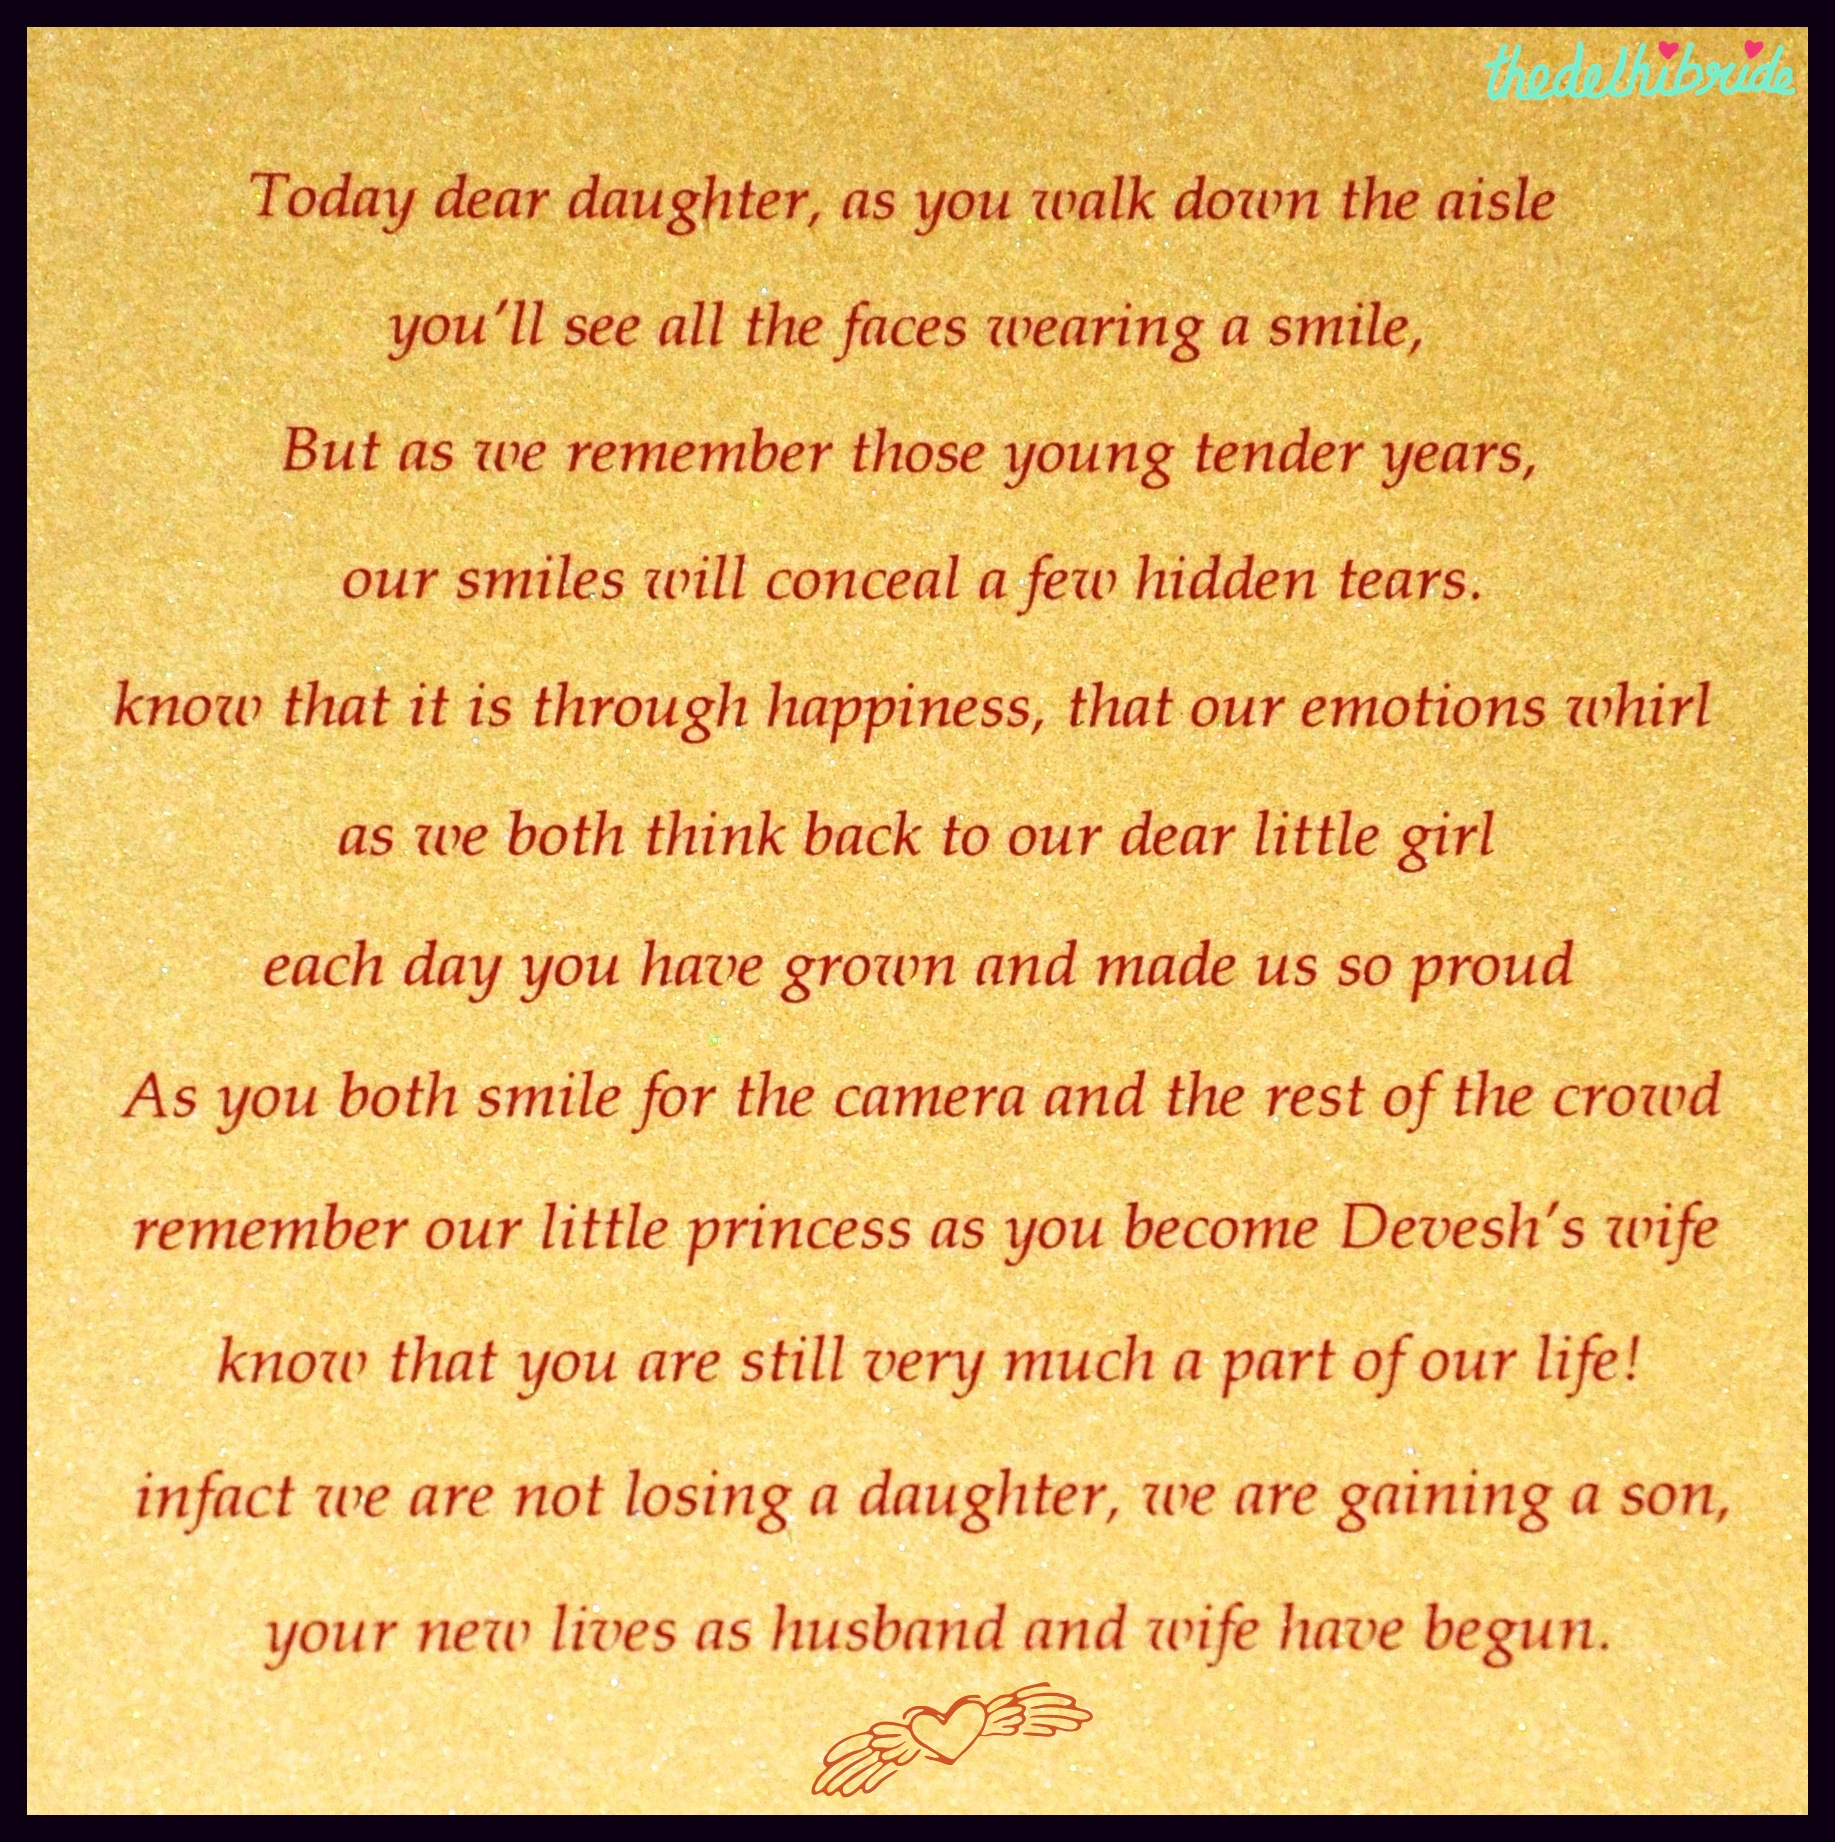 Wedding Invitation Wording For Relatives with luxury invitations layout